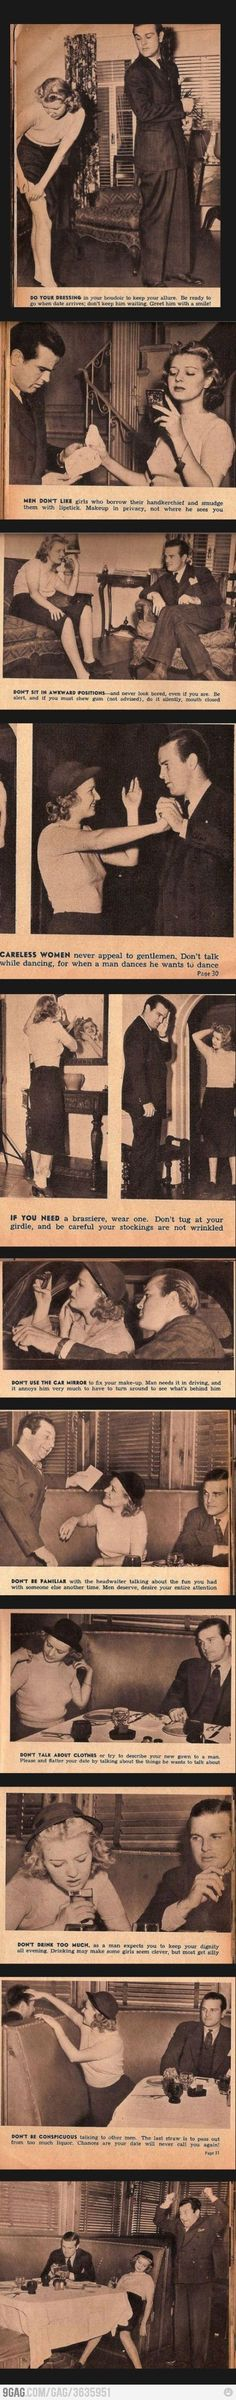 'Vintage' tips for women. What's funny is that everything you see to today is the exact opposite of what's written there.